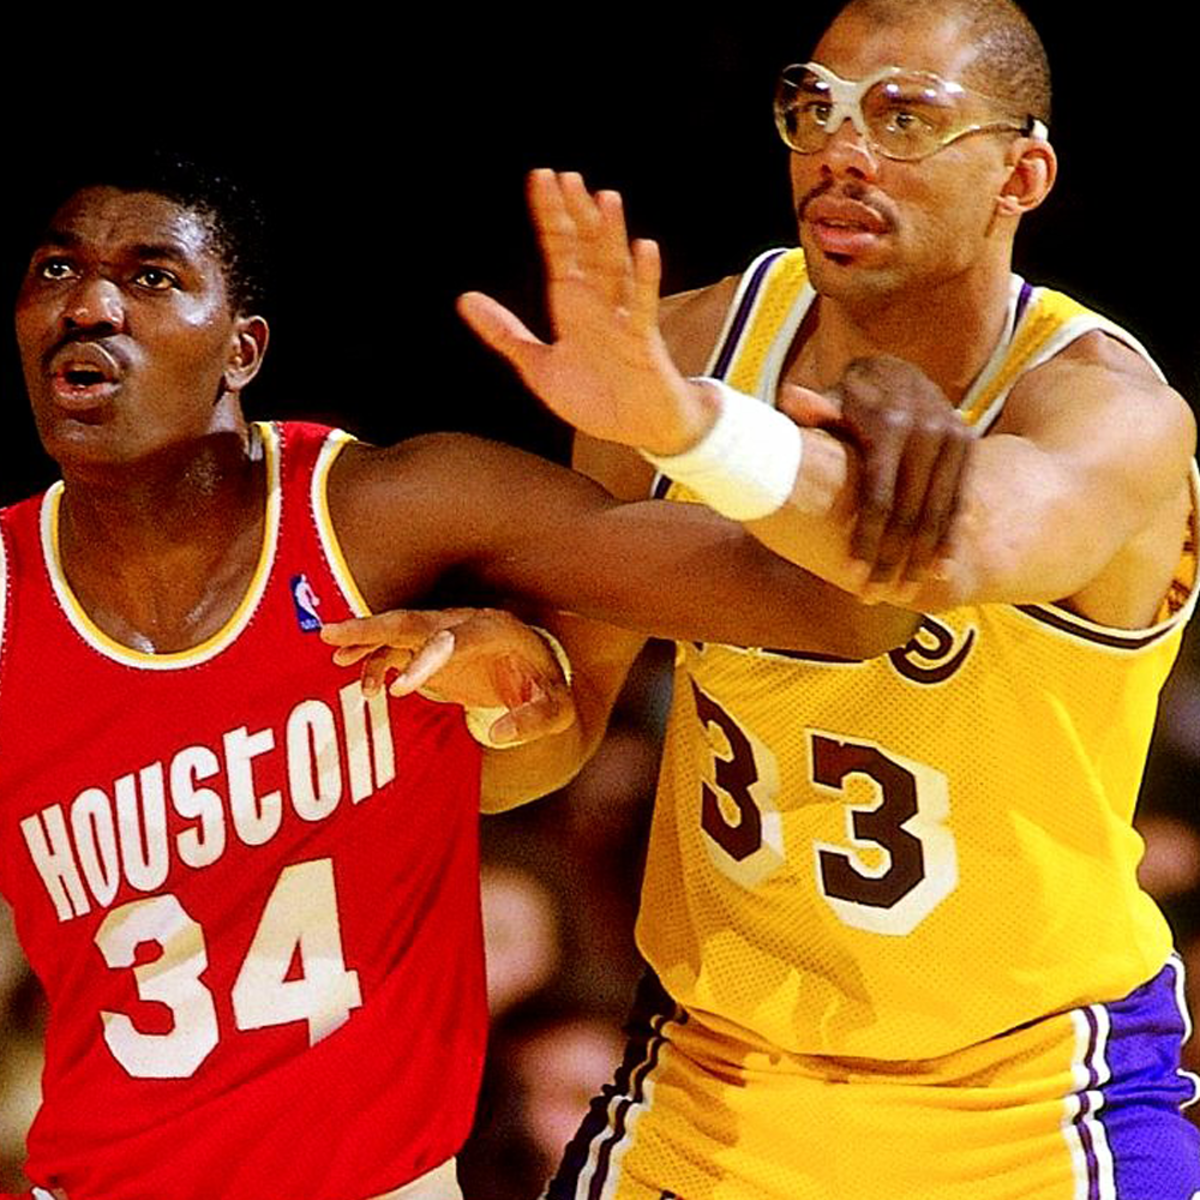 Kareem Abdul-jabbar asking for the ball.